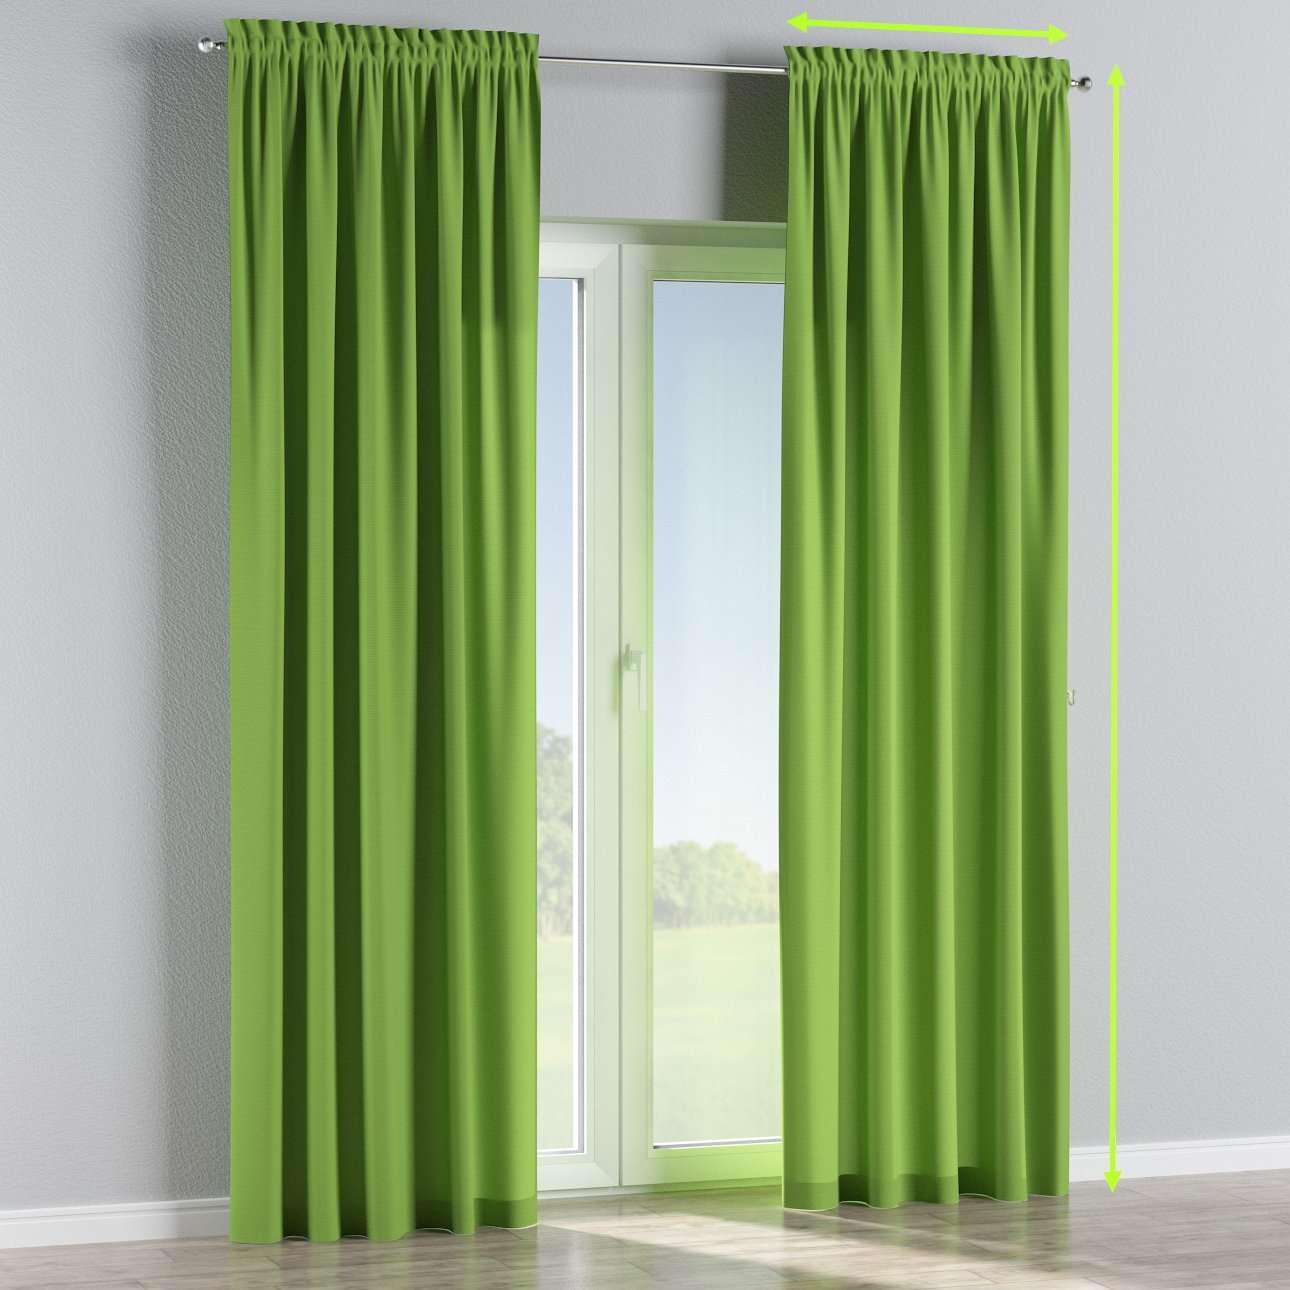 Slot and frill curtains in collection Cotton Panama, fabric: 702-27